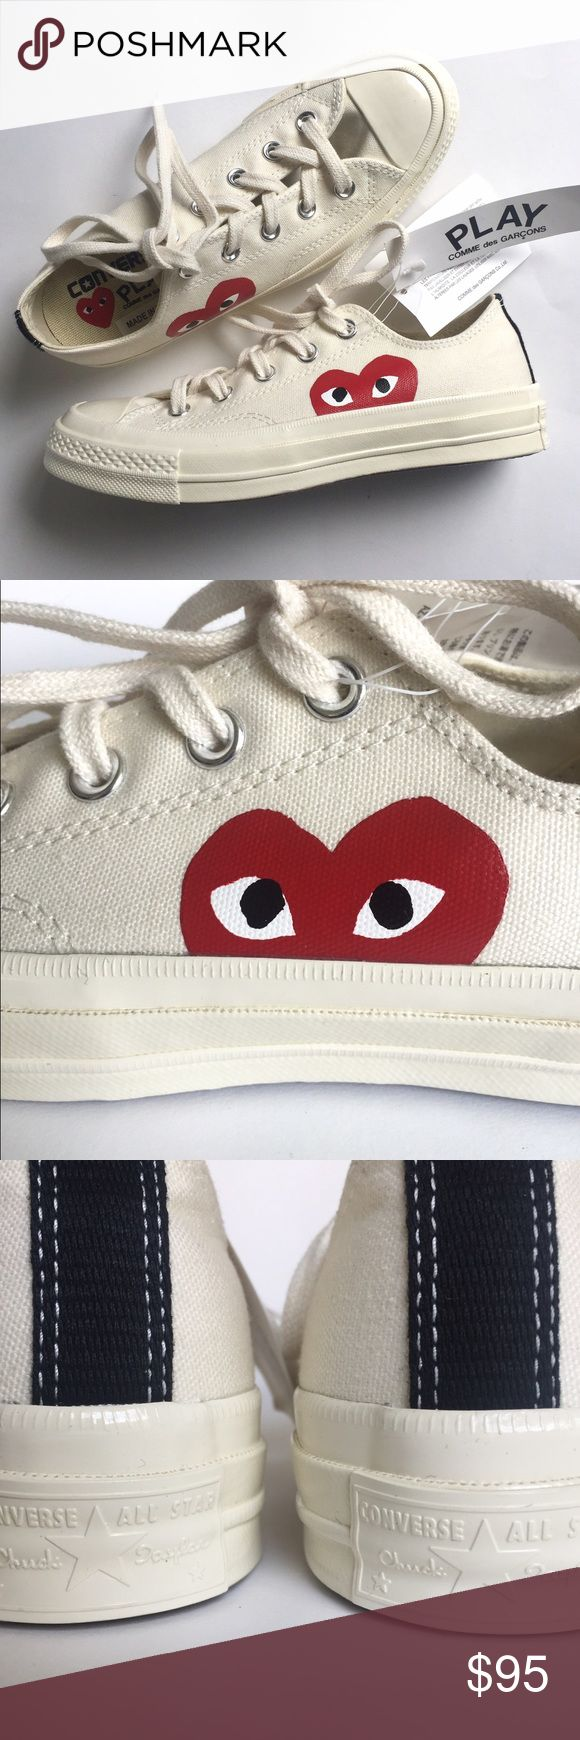 COMME des GARÇONS Play x Converse Low Top Sneaker 100% Authentic Brand New CDG x Converse Collab Sneakers / Sport sneaker with instantly recognizable CDG heart logo and cut from tough canvas / Lace up style / Rubber sole / pet-free & smoke-free home / Size: Men 4 Woman 6 EU 36.5 Comme des Garcons Shoes Sneakers